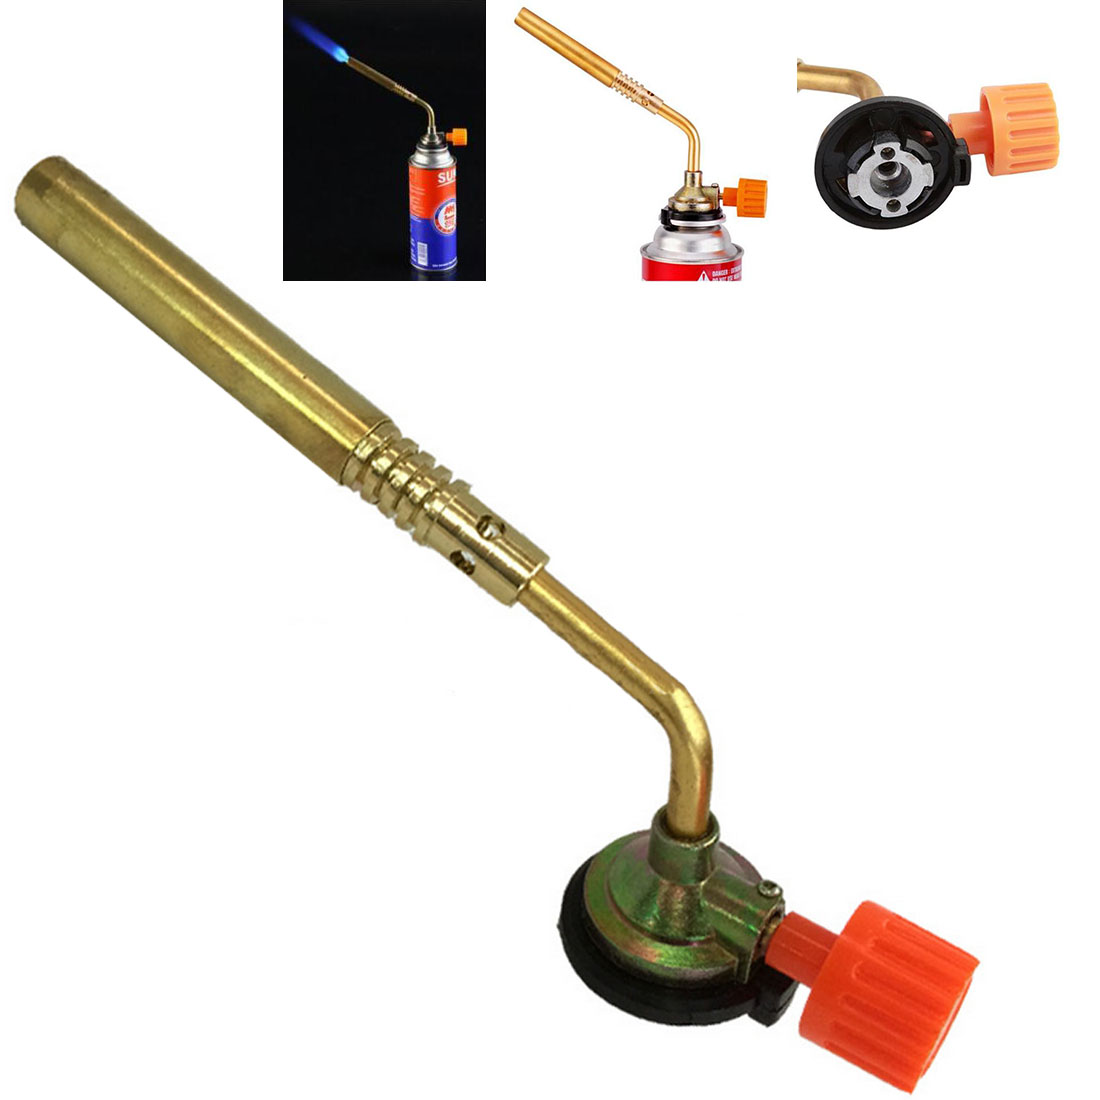 Manual Card Welding Torch Flamethrower Burner Butane Gas Blow Torch Hand Ignition Camping Welding BBQ Tool Gas Torch